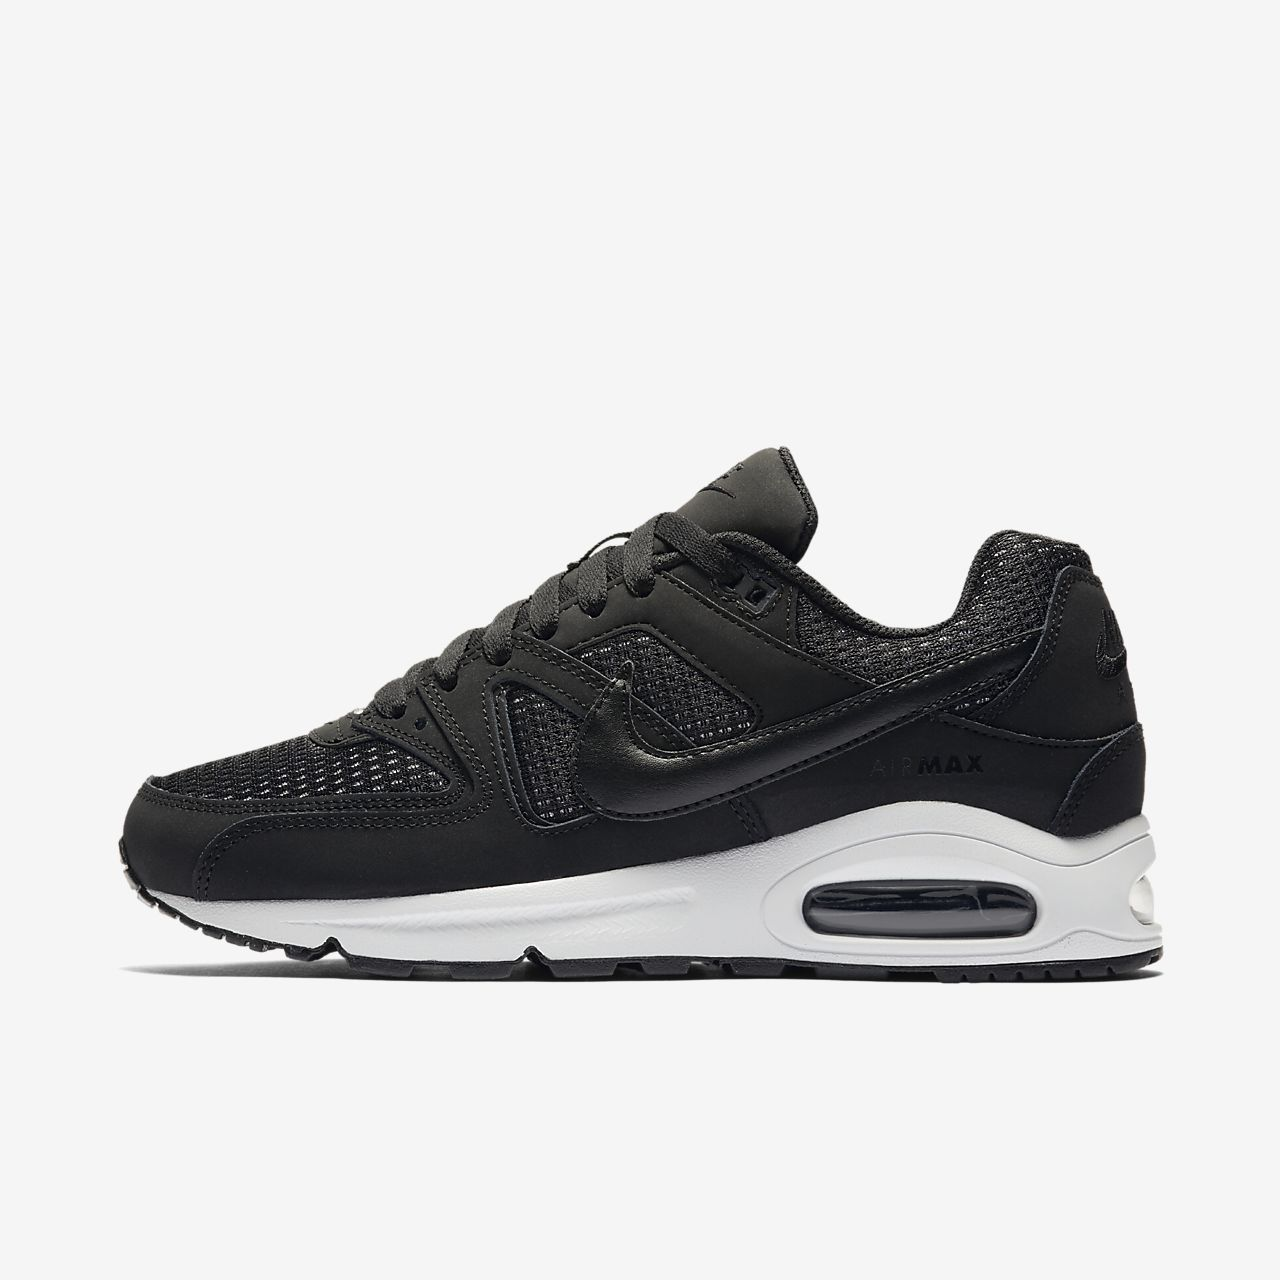 low priced c57d3 d350e ... Nike Air Max Command Womens Shoe